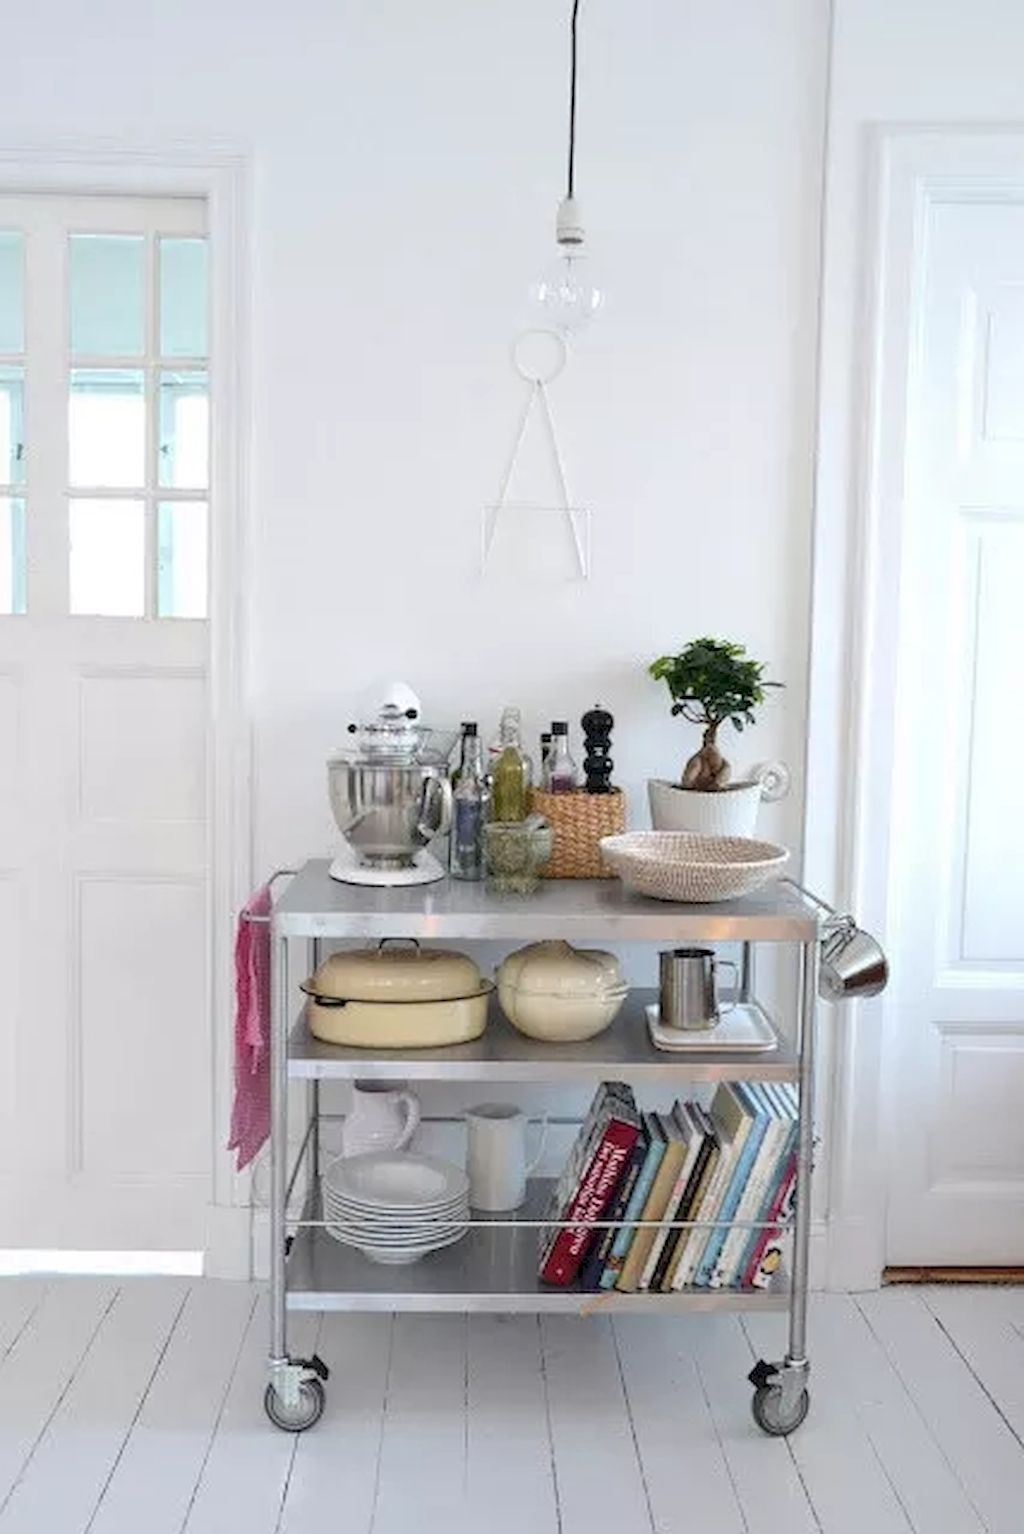 small kitchen organization and tips to max your space with images small space kitchen small on kitchen organization for small spaces id=39261